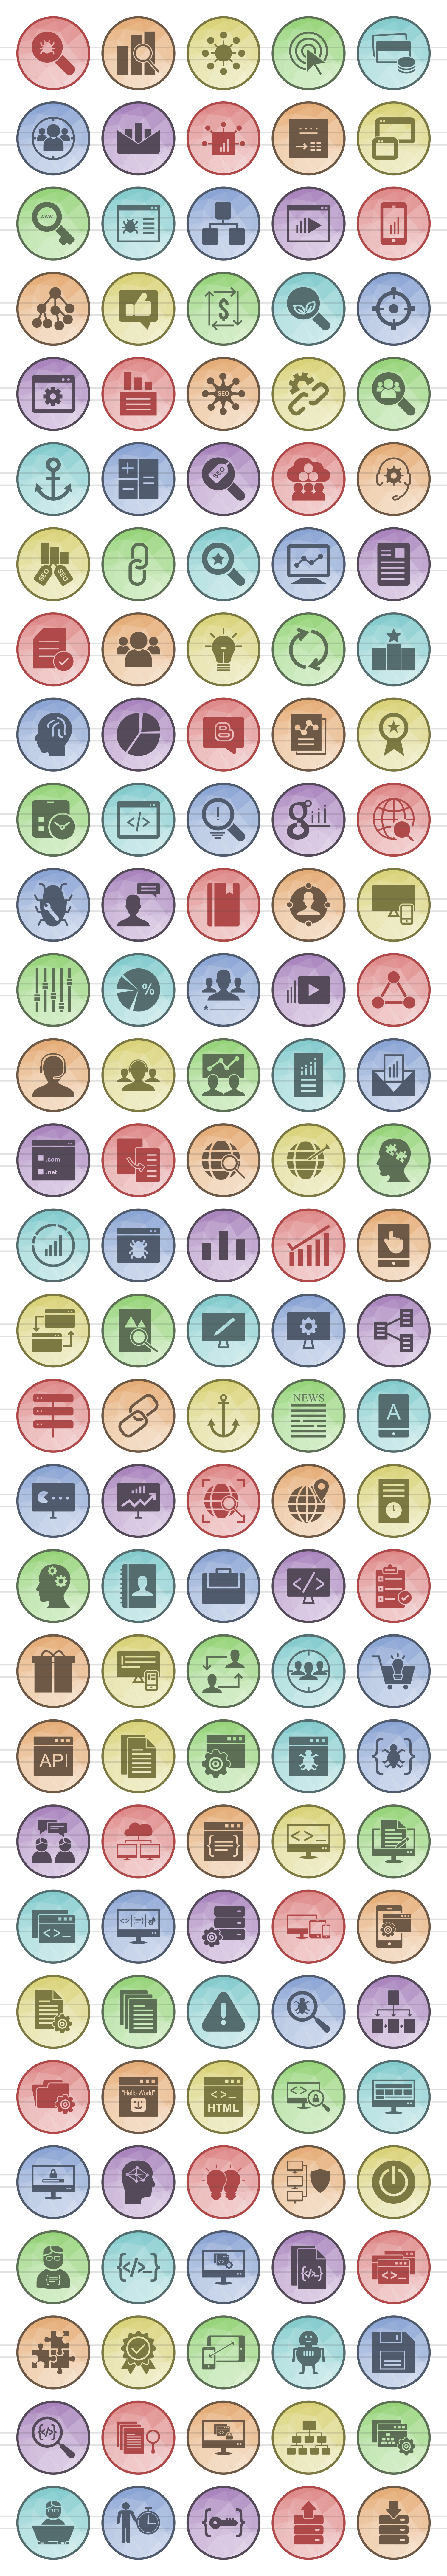 150 SEO & Development Filled Low Poly Icons example image 2